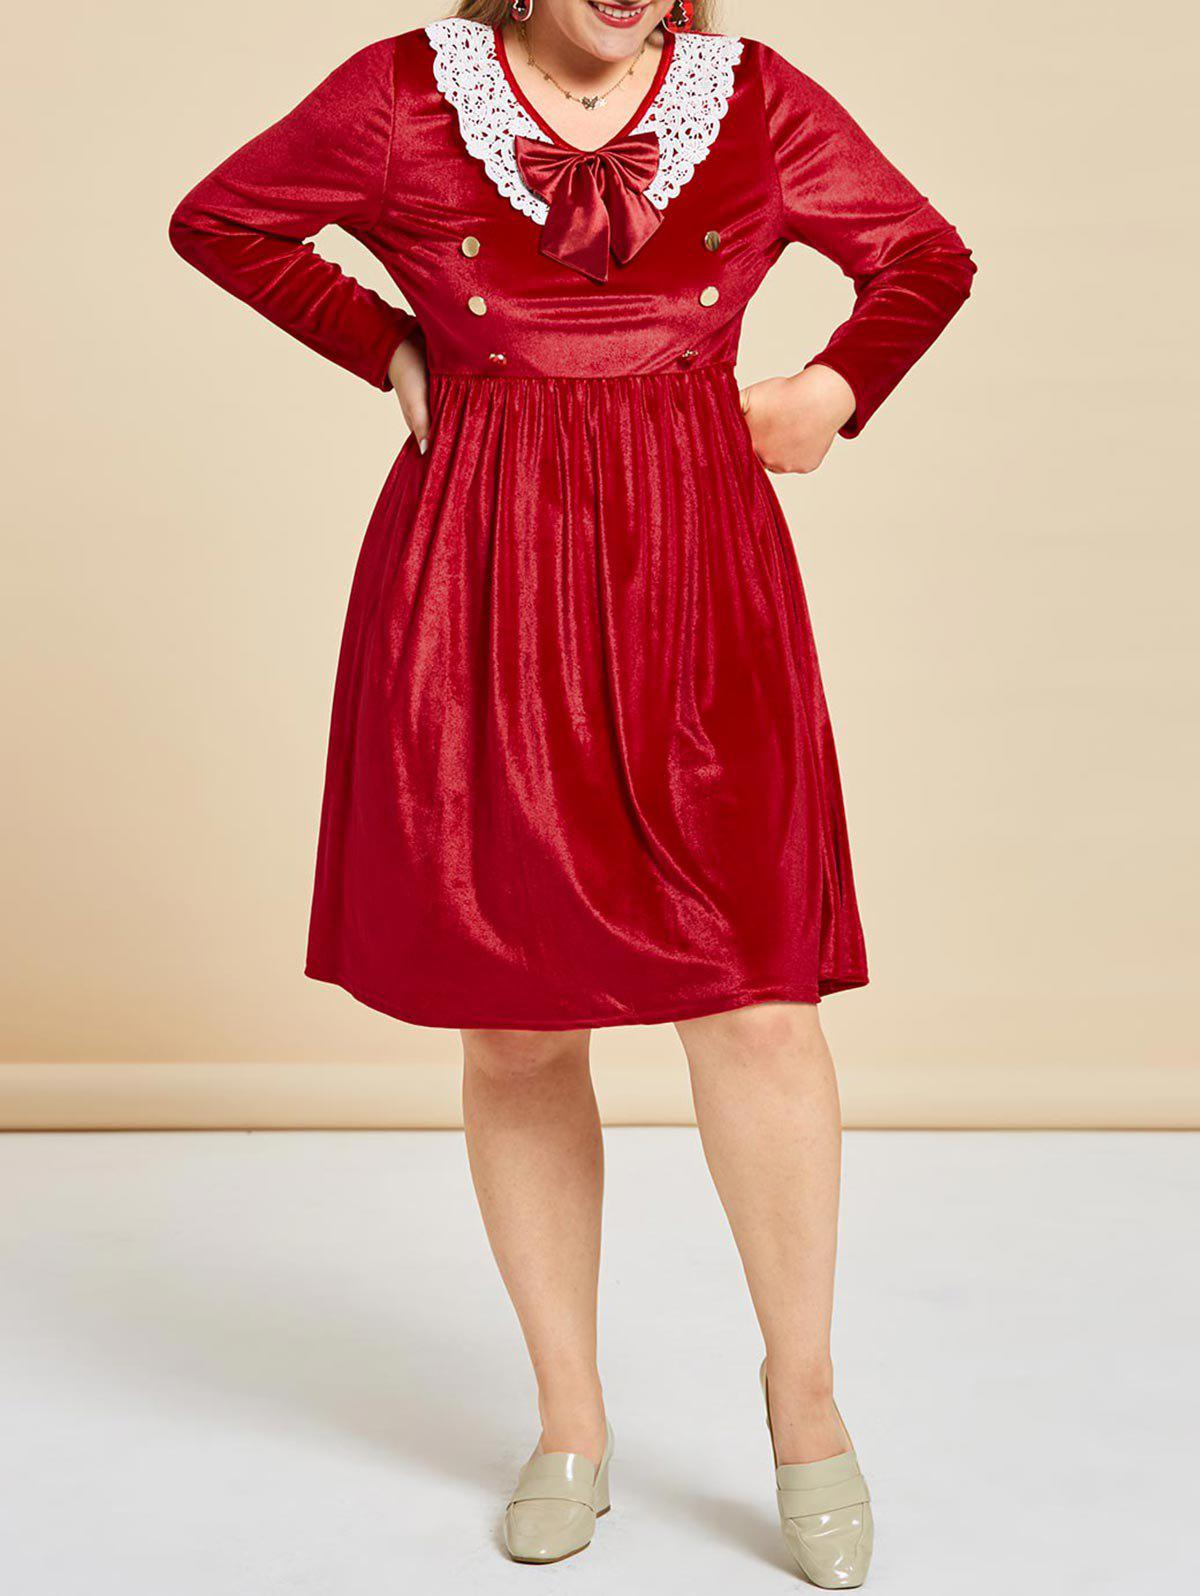 Plus Size Bowknot Velvet Lace Insert Dress - RED 5X